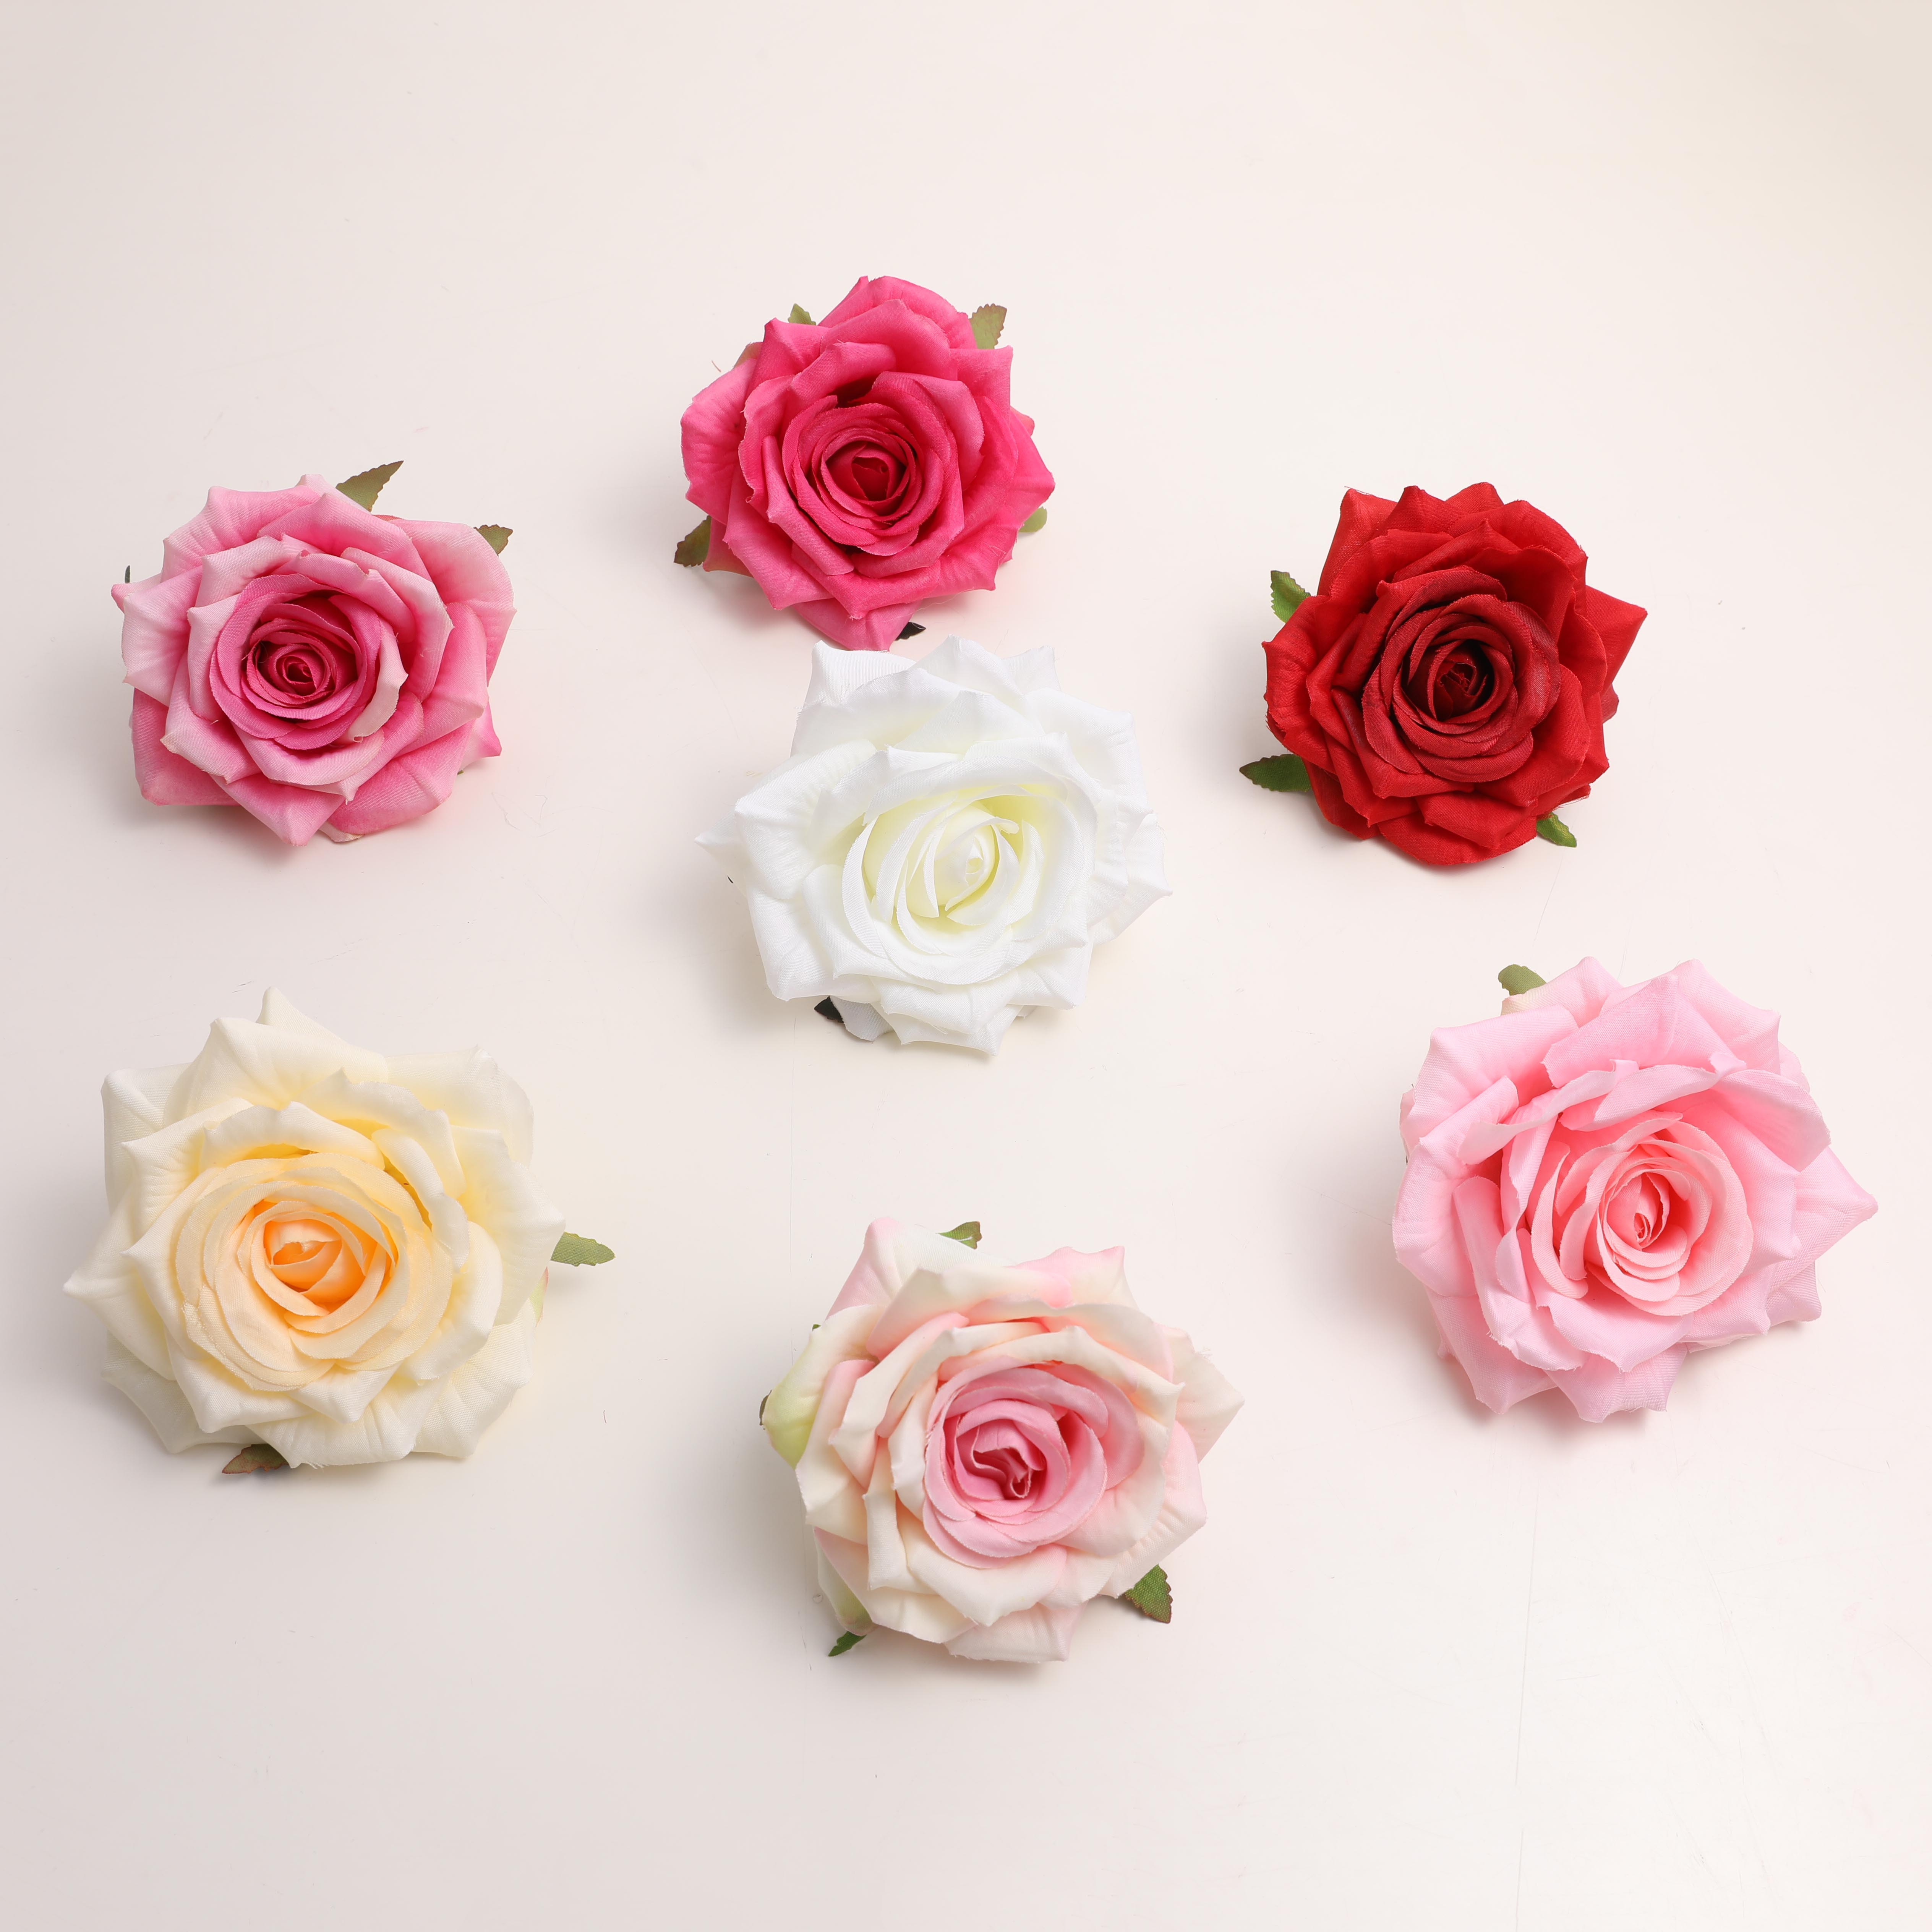 Wholesale Shenzhen jingrui artificial silk flower <strong>rose</strong> <strong>heads</strong> for wedding decoration